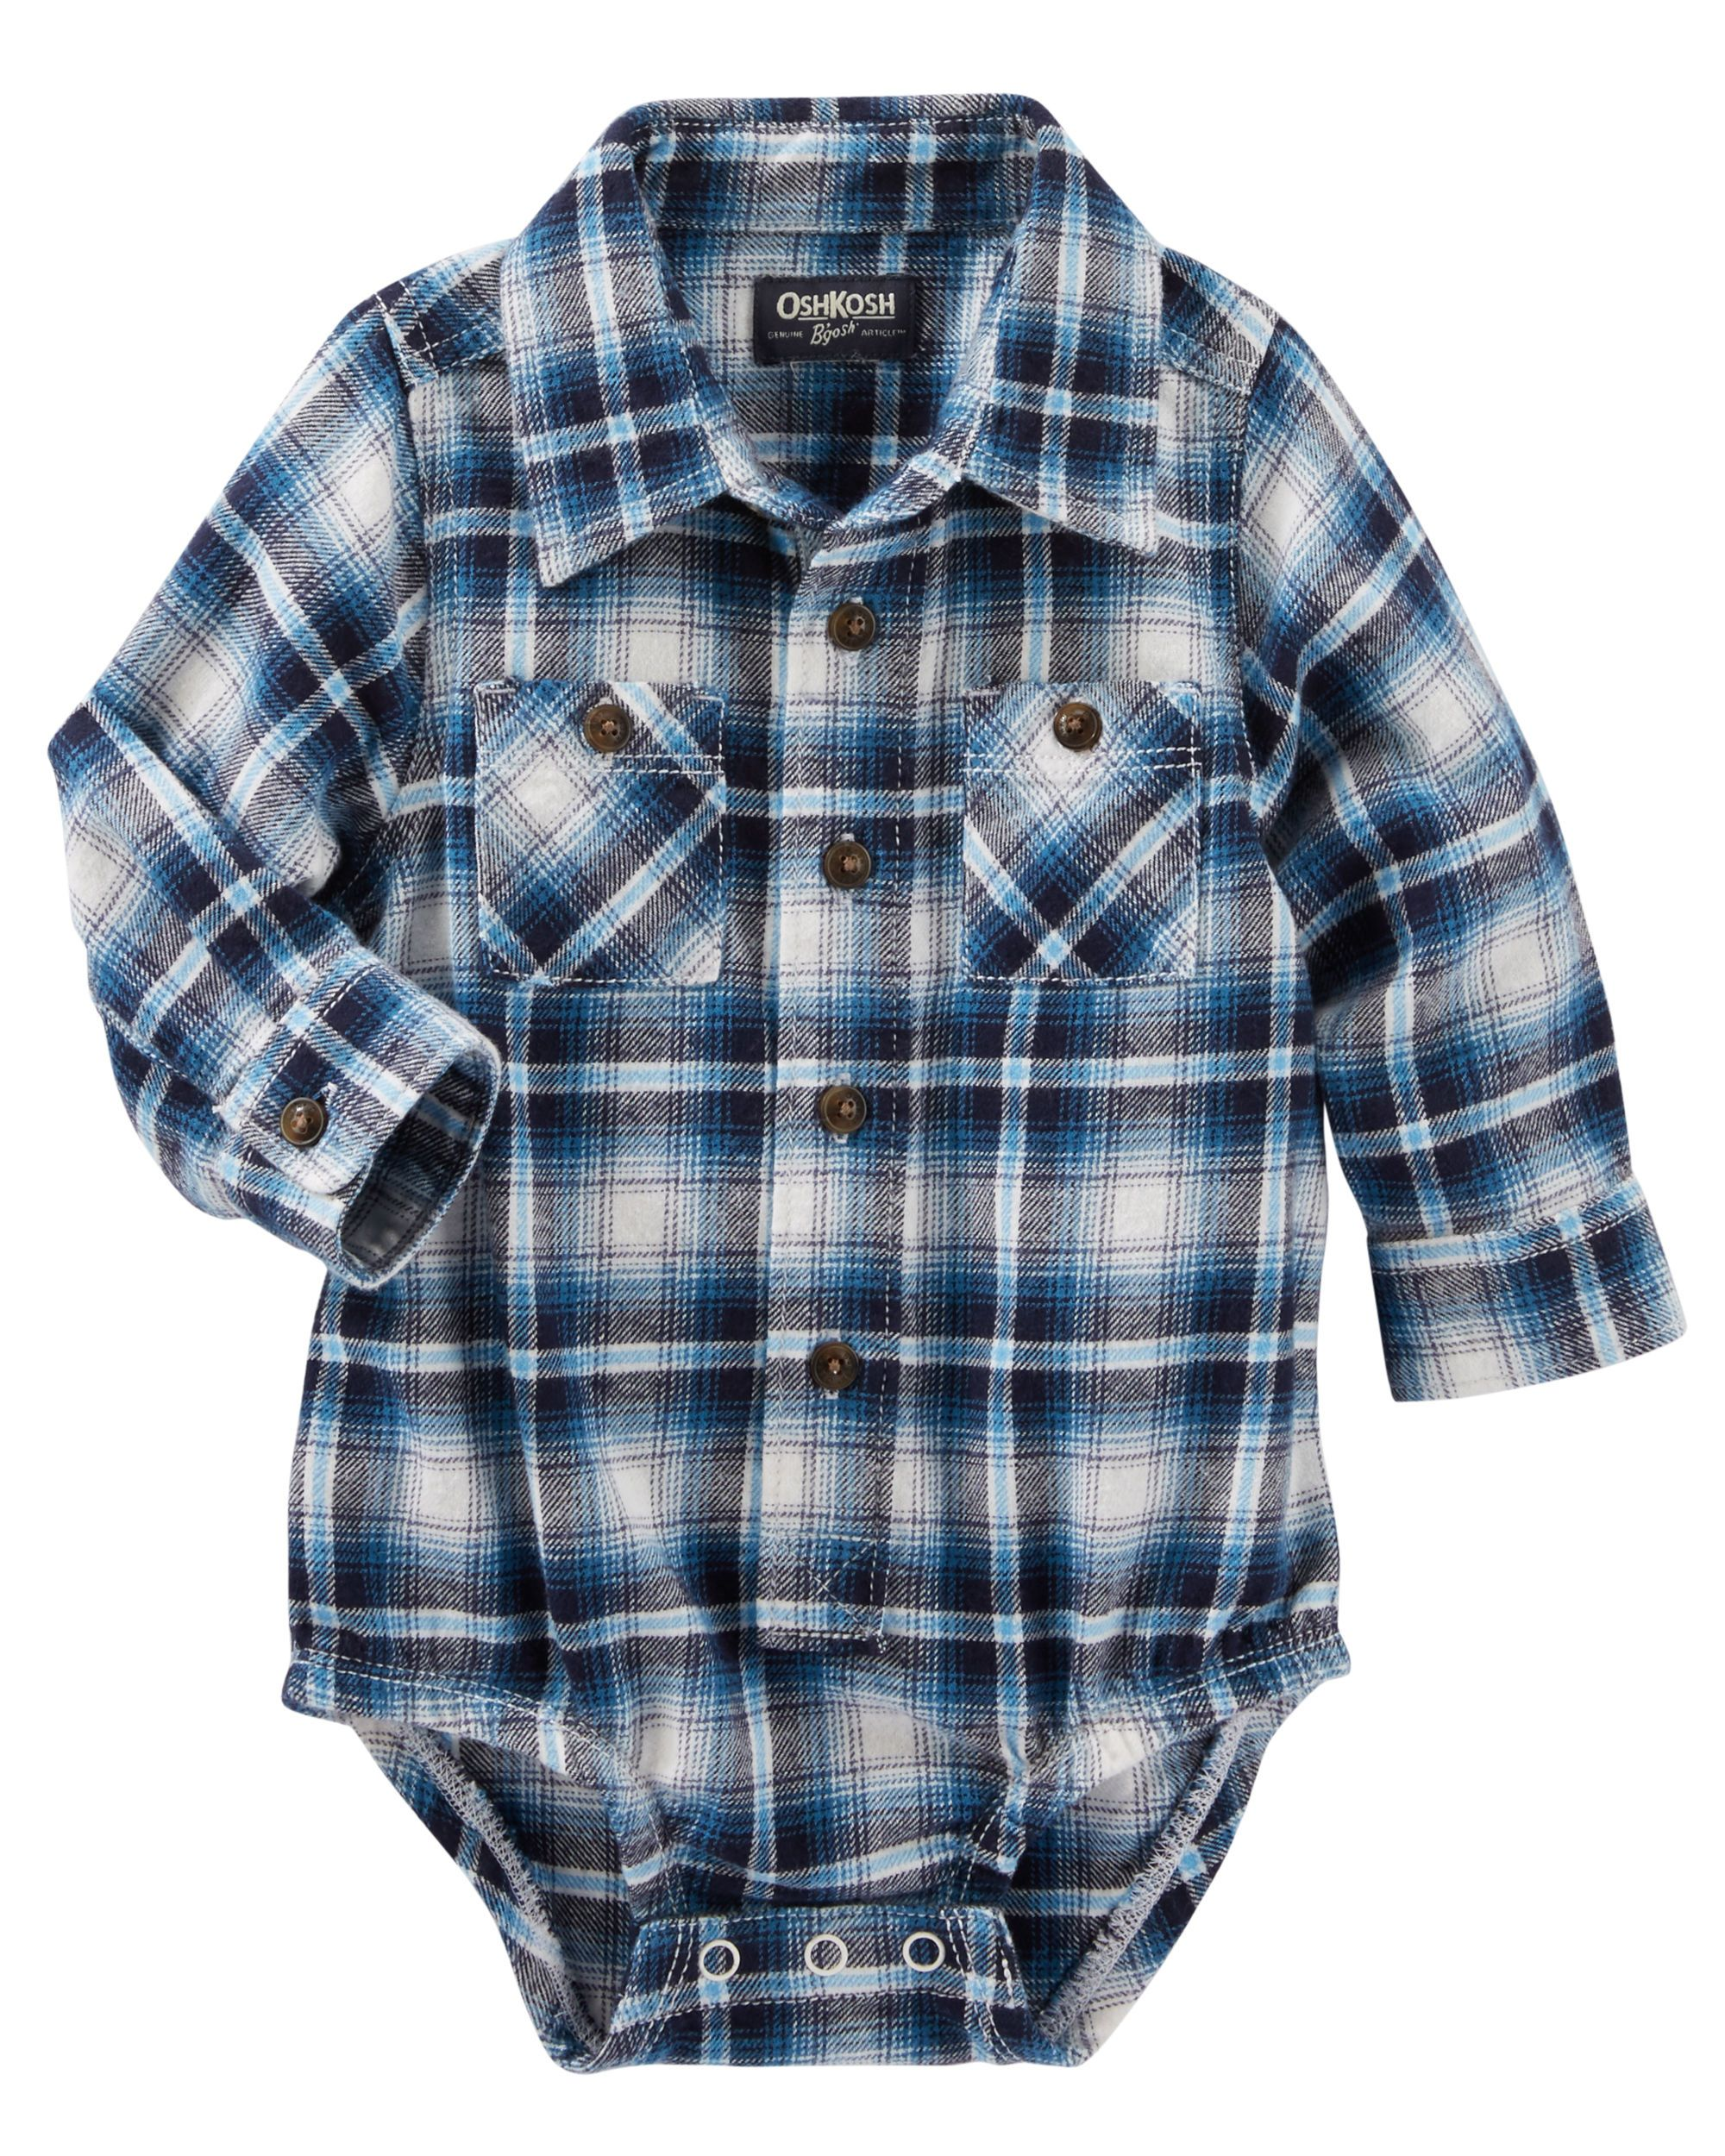 Blue flannel outfits for guys  Baby Boy Pocket Plaid ButtonFront Bodysuit  OshKosh  Future